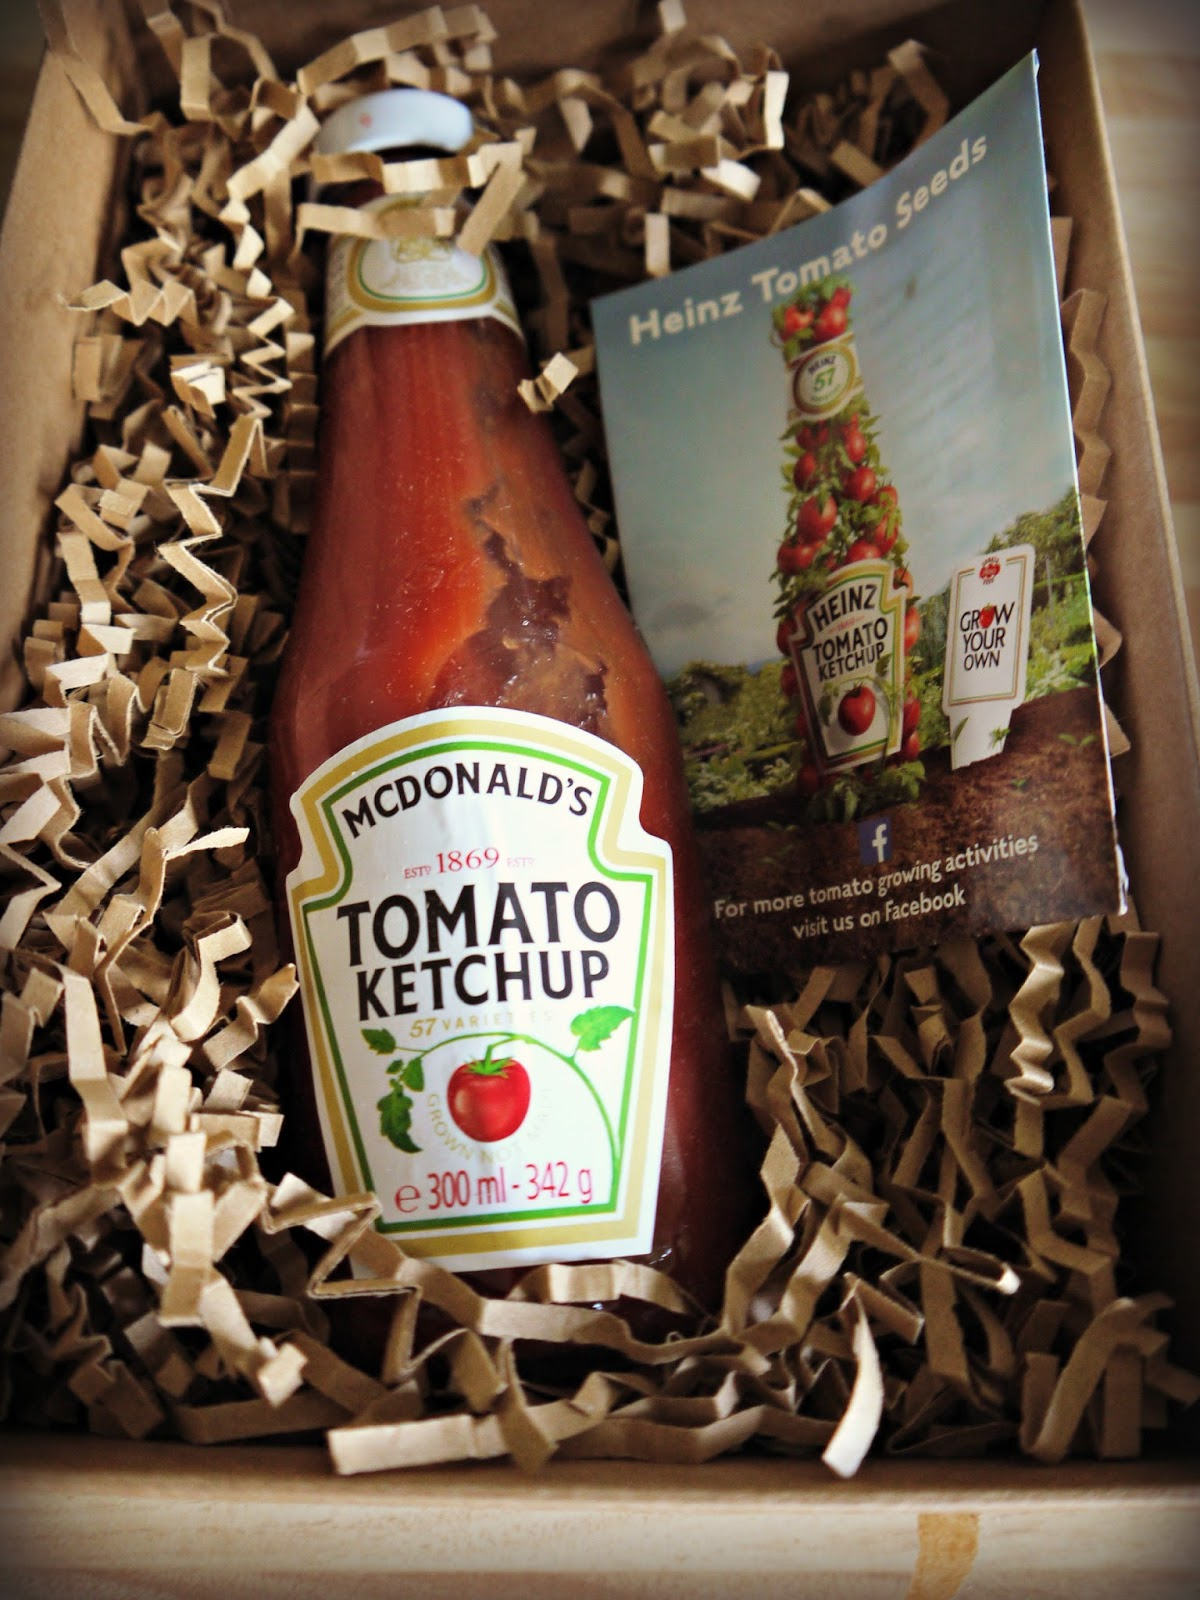 Inside the Wendy House: Heinz Tomato Ketchup - Grow Your Own Campaign